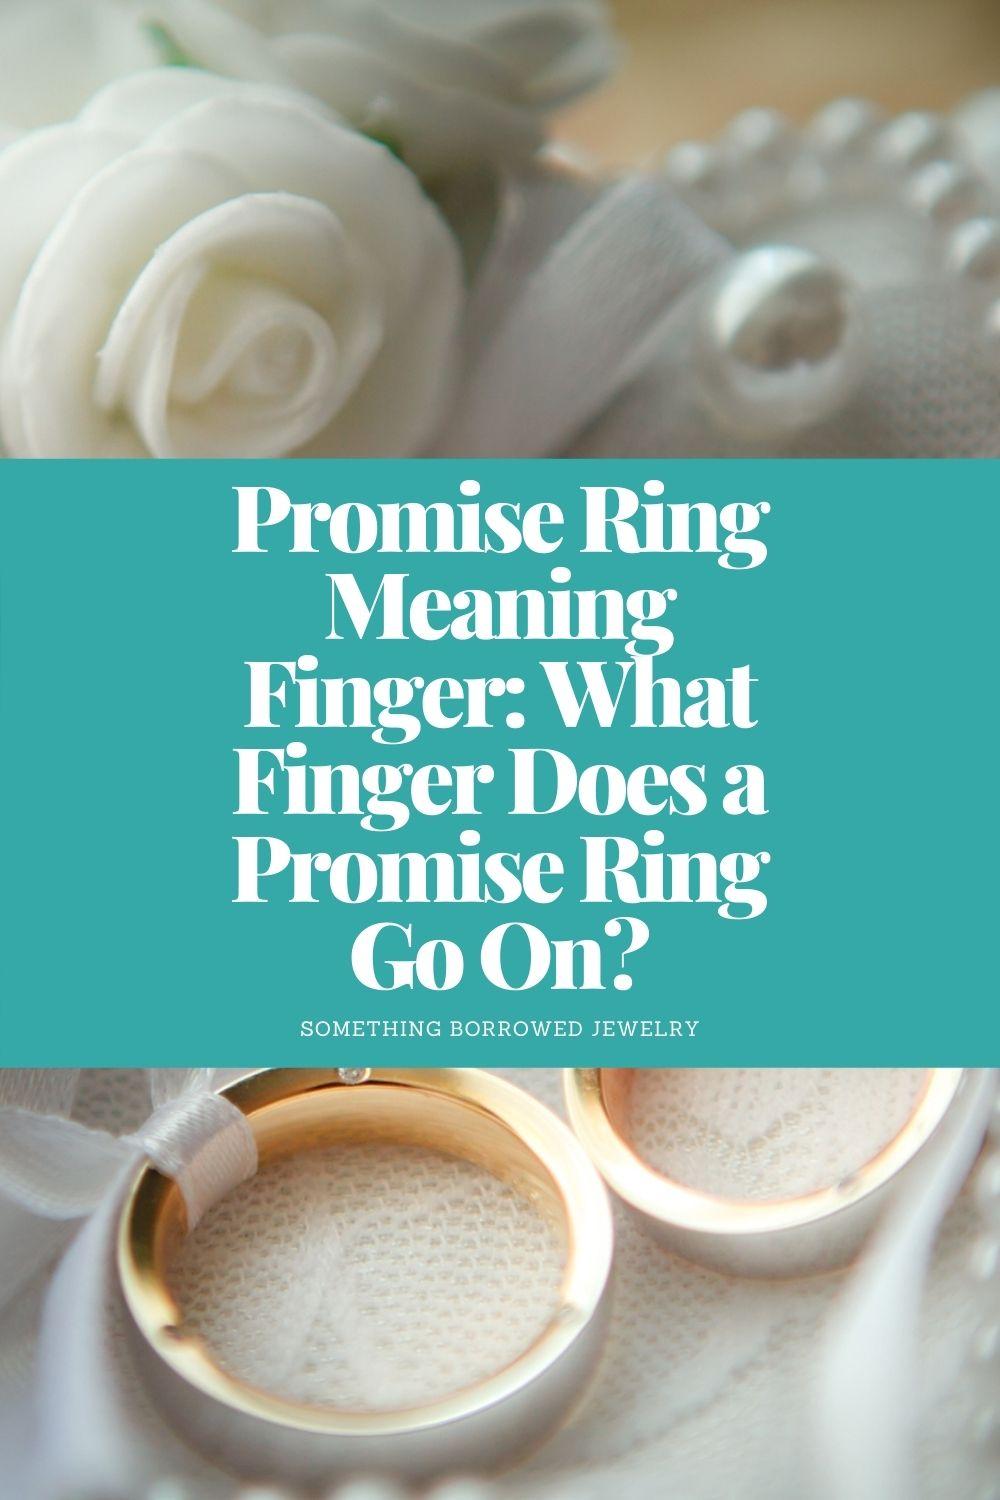 Promise Ring Meaning Finger What Finger Does a Promise Ring Go On pin 2